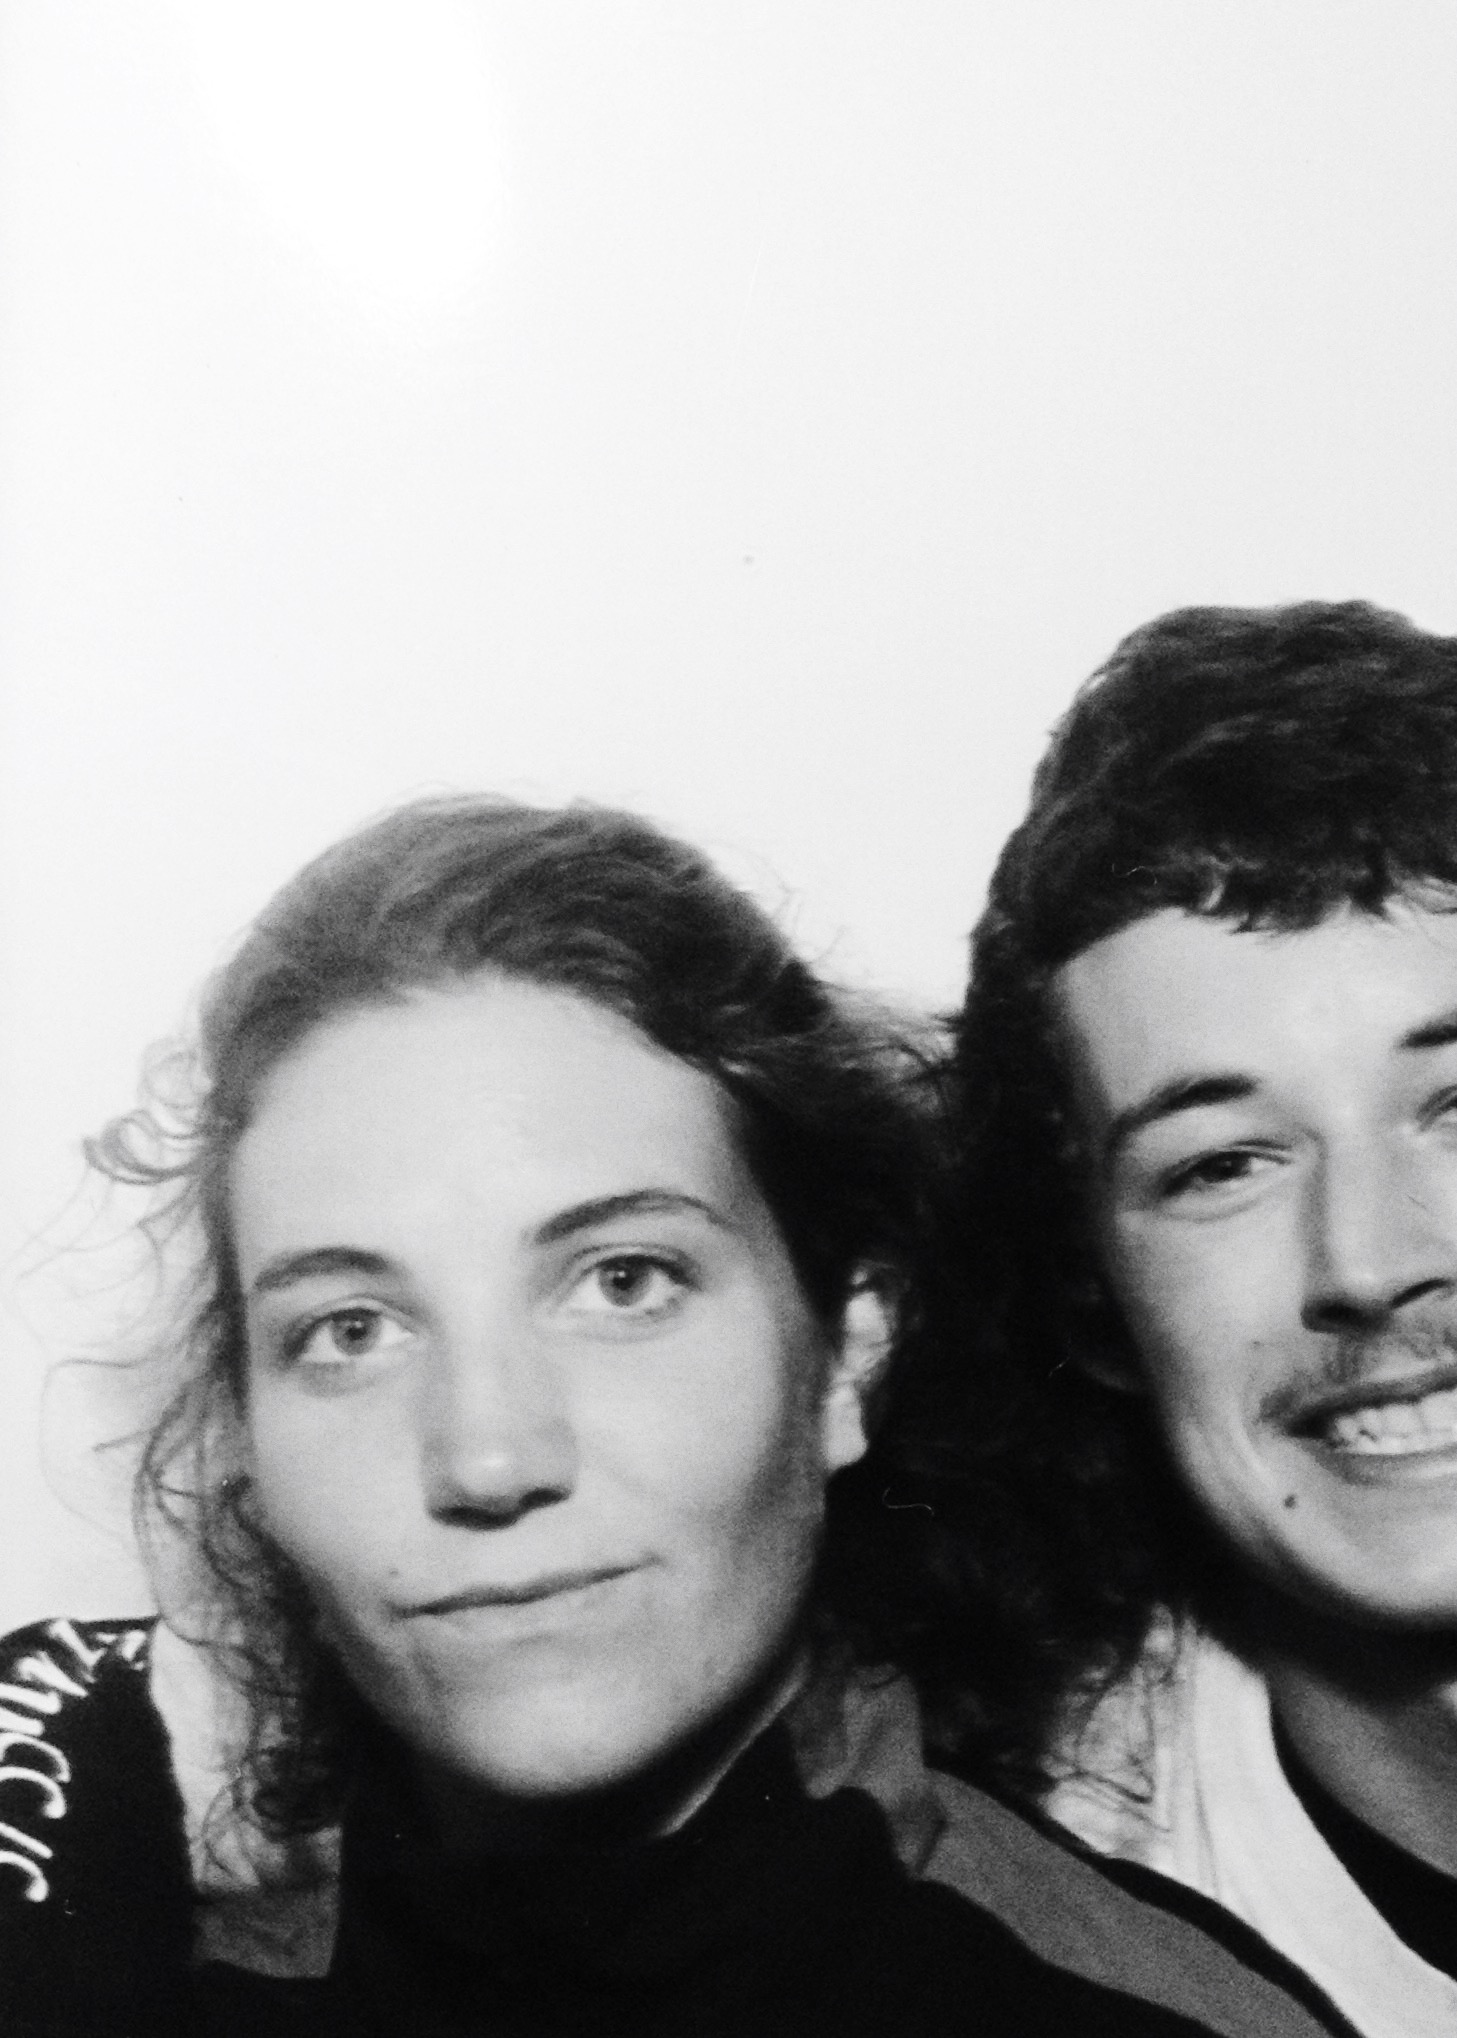 a picture of me and the woman i share life with ( Lou Salasca ) taken in one of the photo booths at House of Vans London